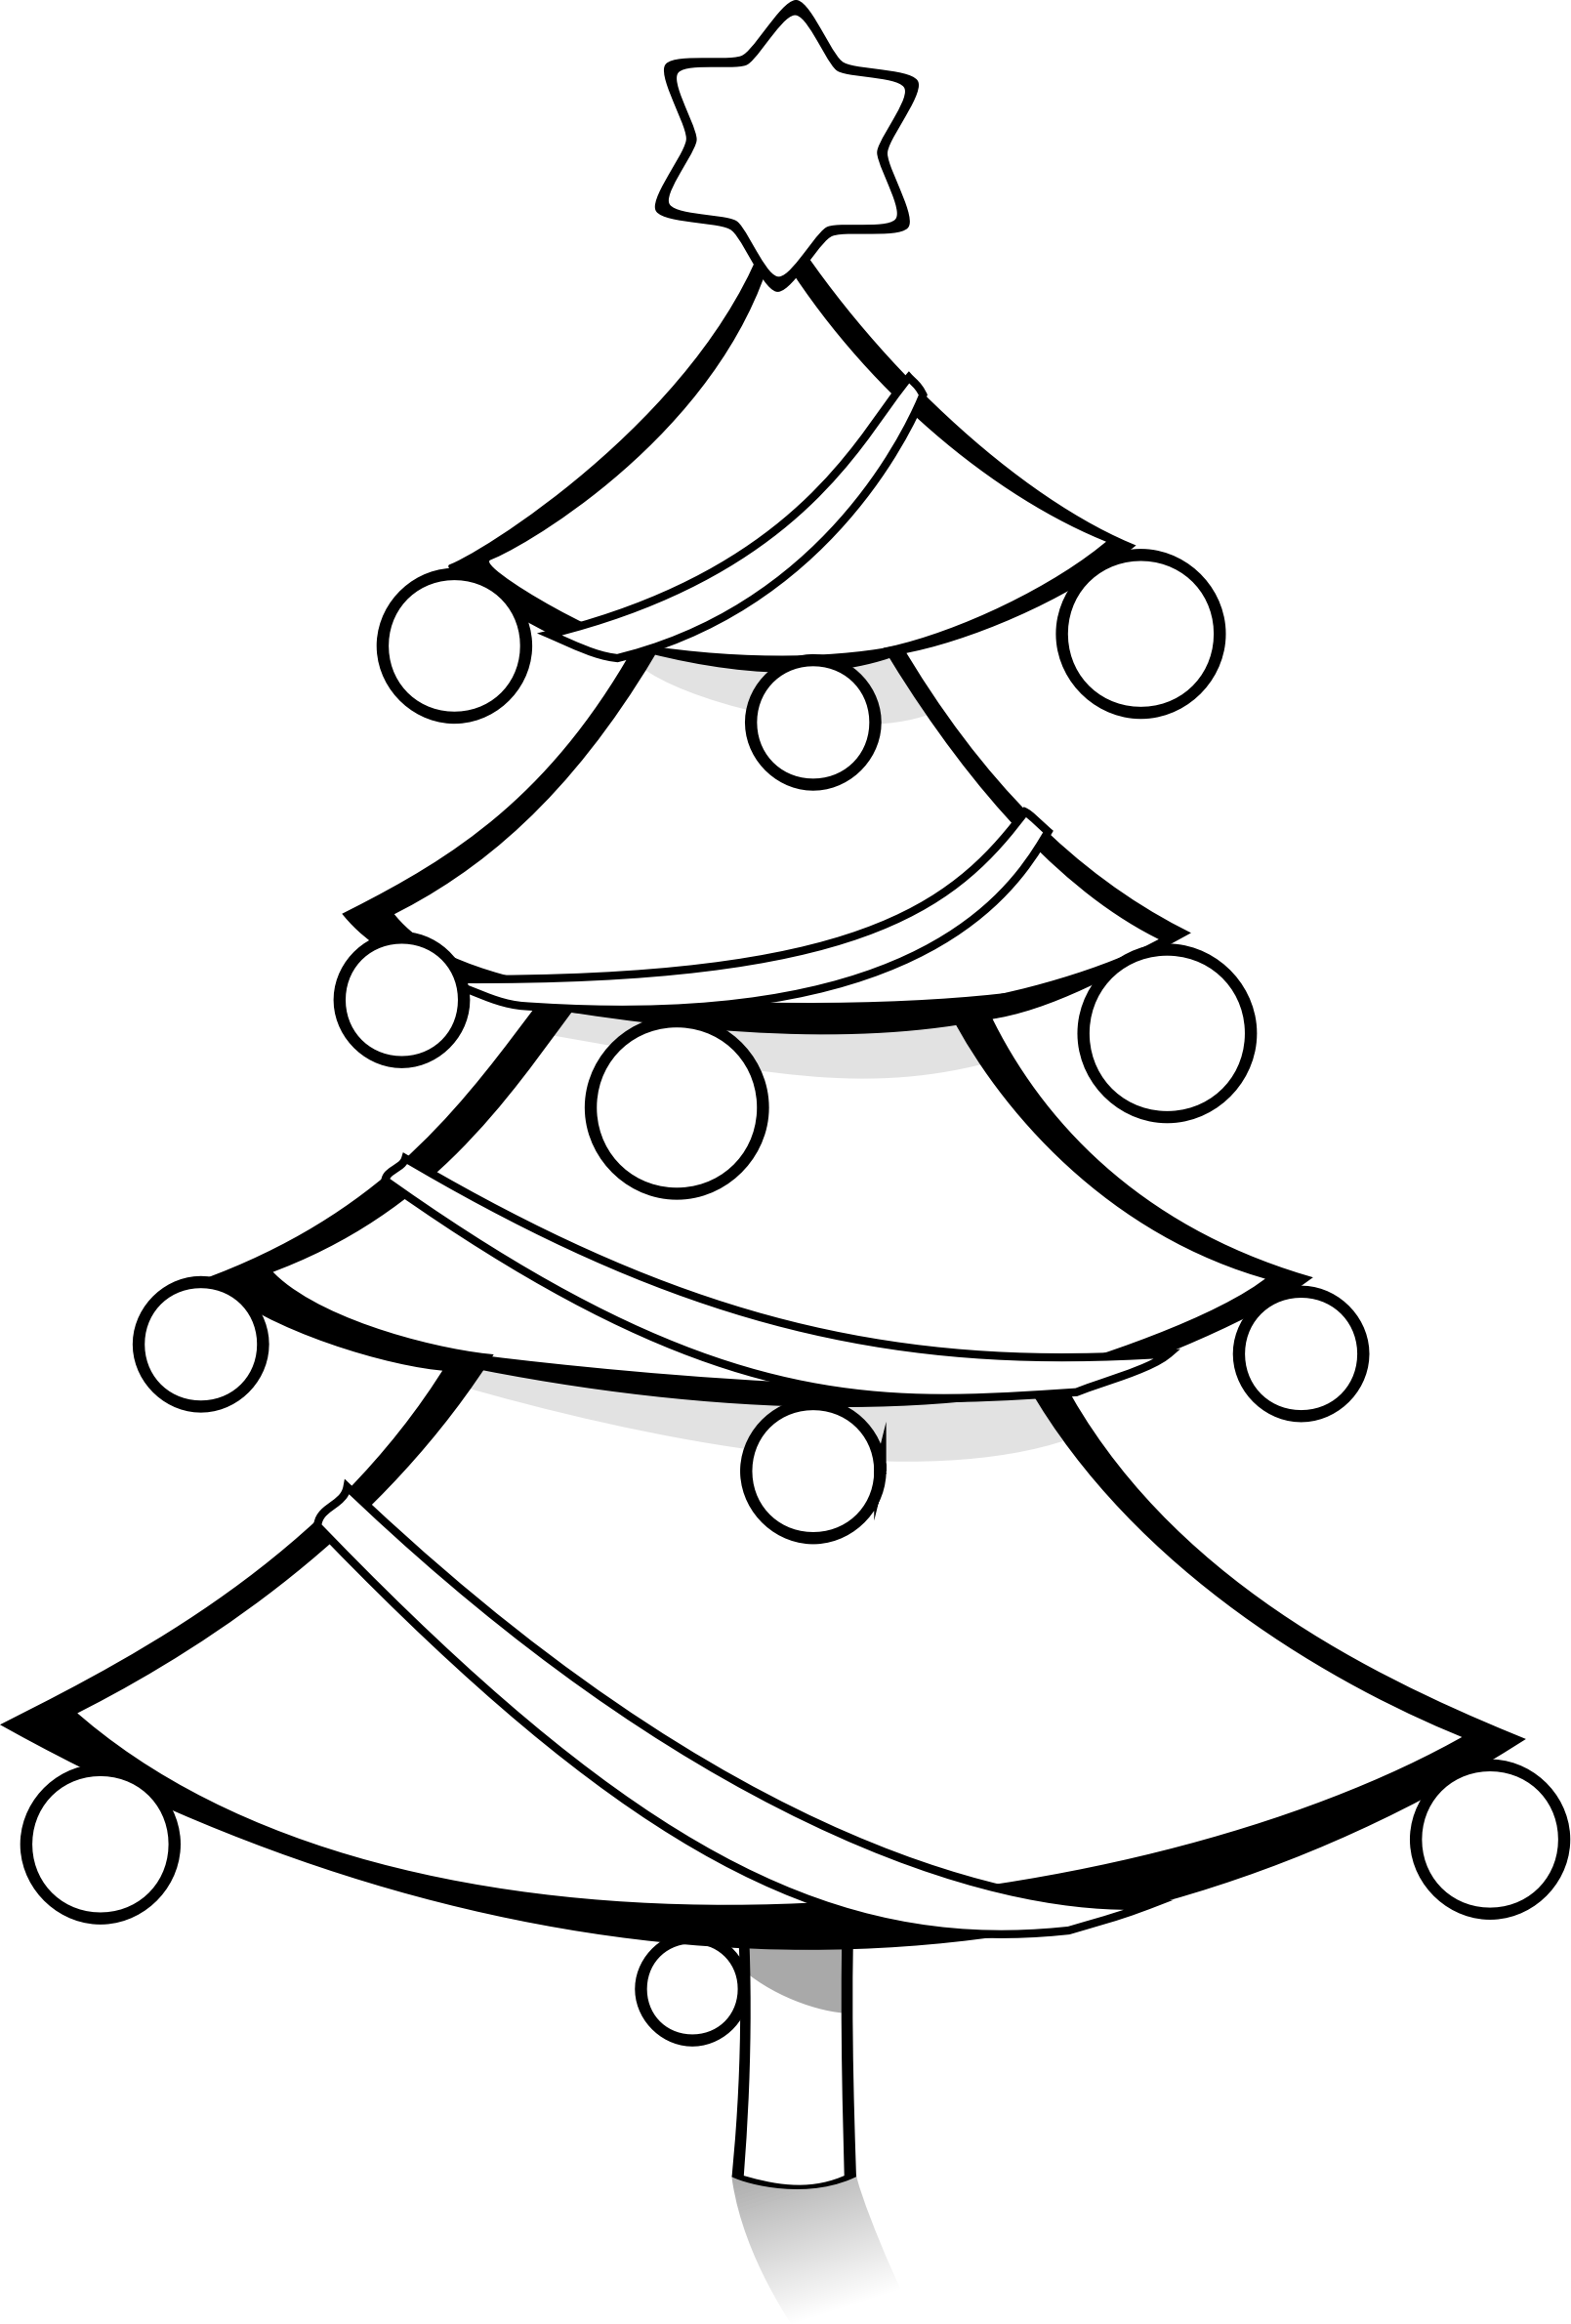 1609x2380 Christmas Tree Black And White Black And White Xmas Tree Clipart 2